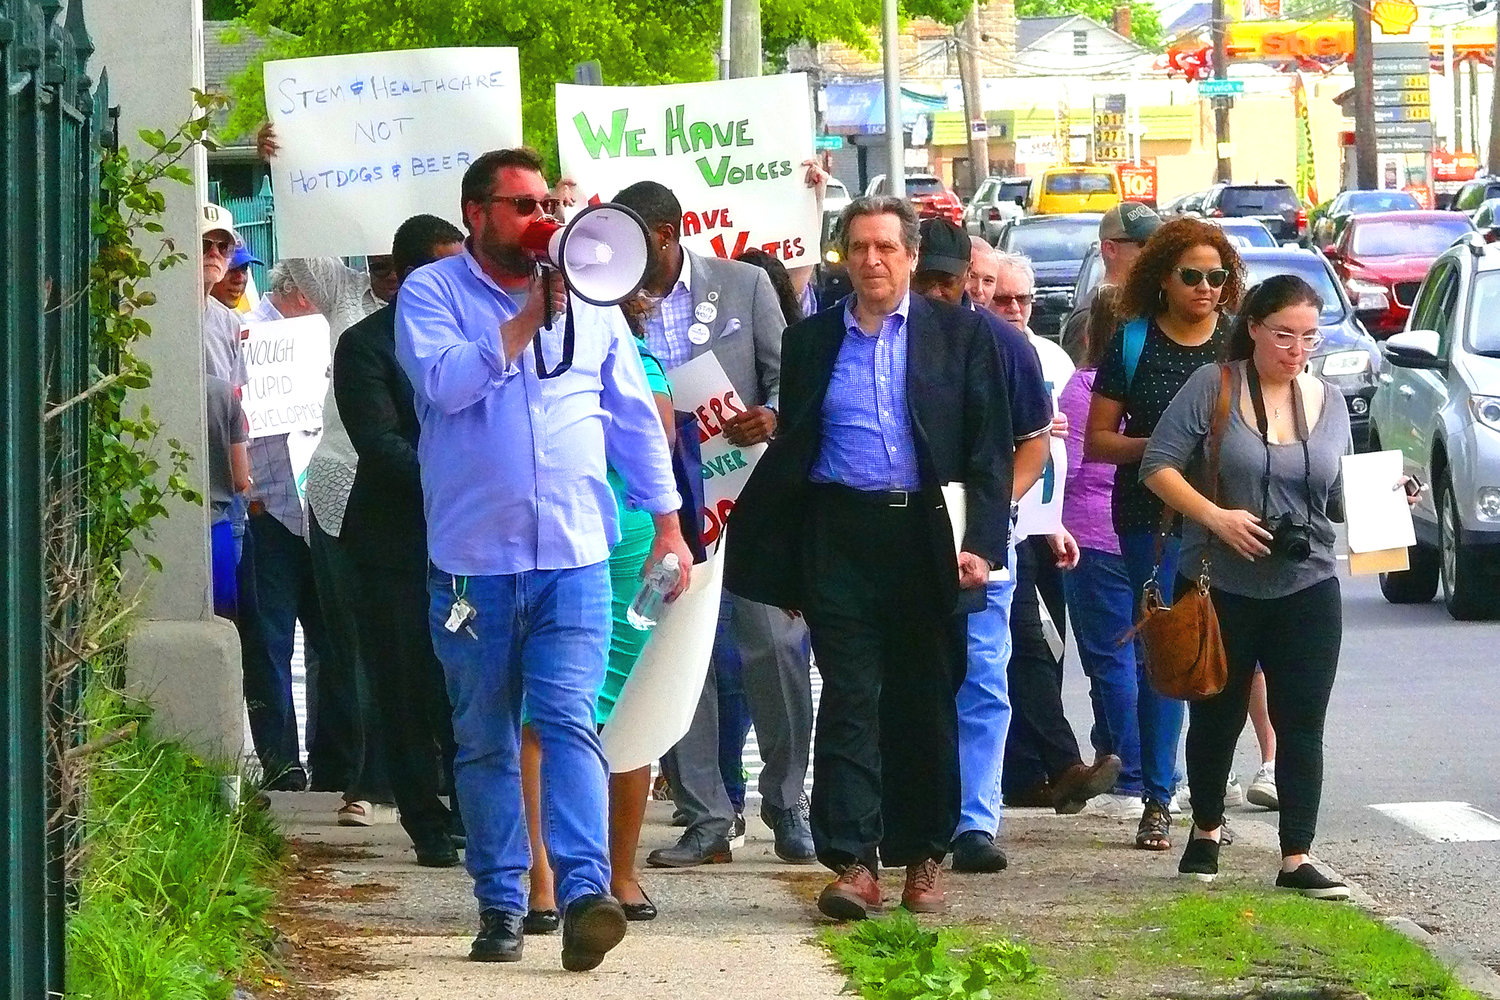 Belmont Park Community Coalition member Matthew Sexton, left, and attorney Norman Siegel led a protest against the arena project over the summer. Siegel said that the Draft Environmental Impact Study lacked too many details for the project to begin this spring.